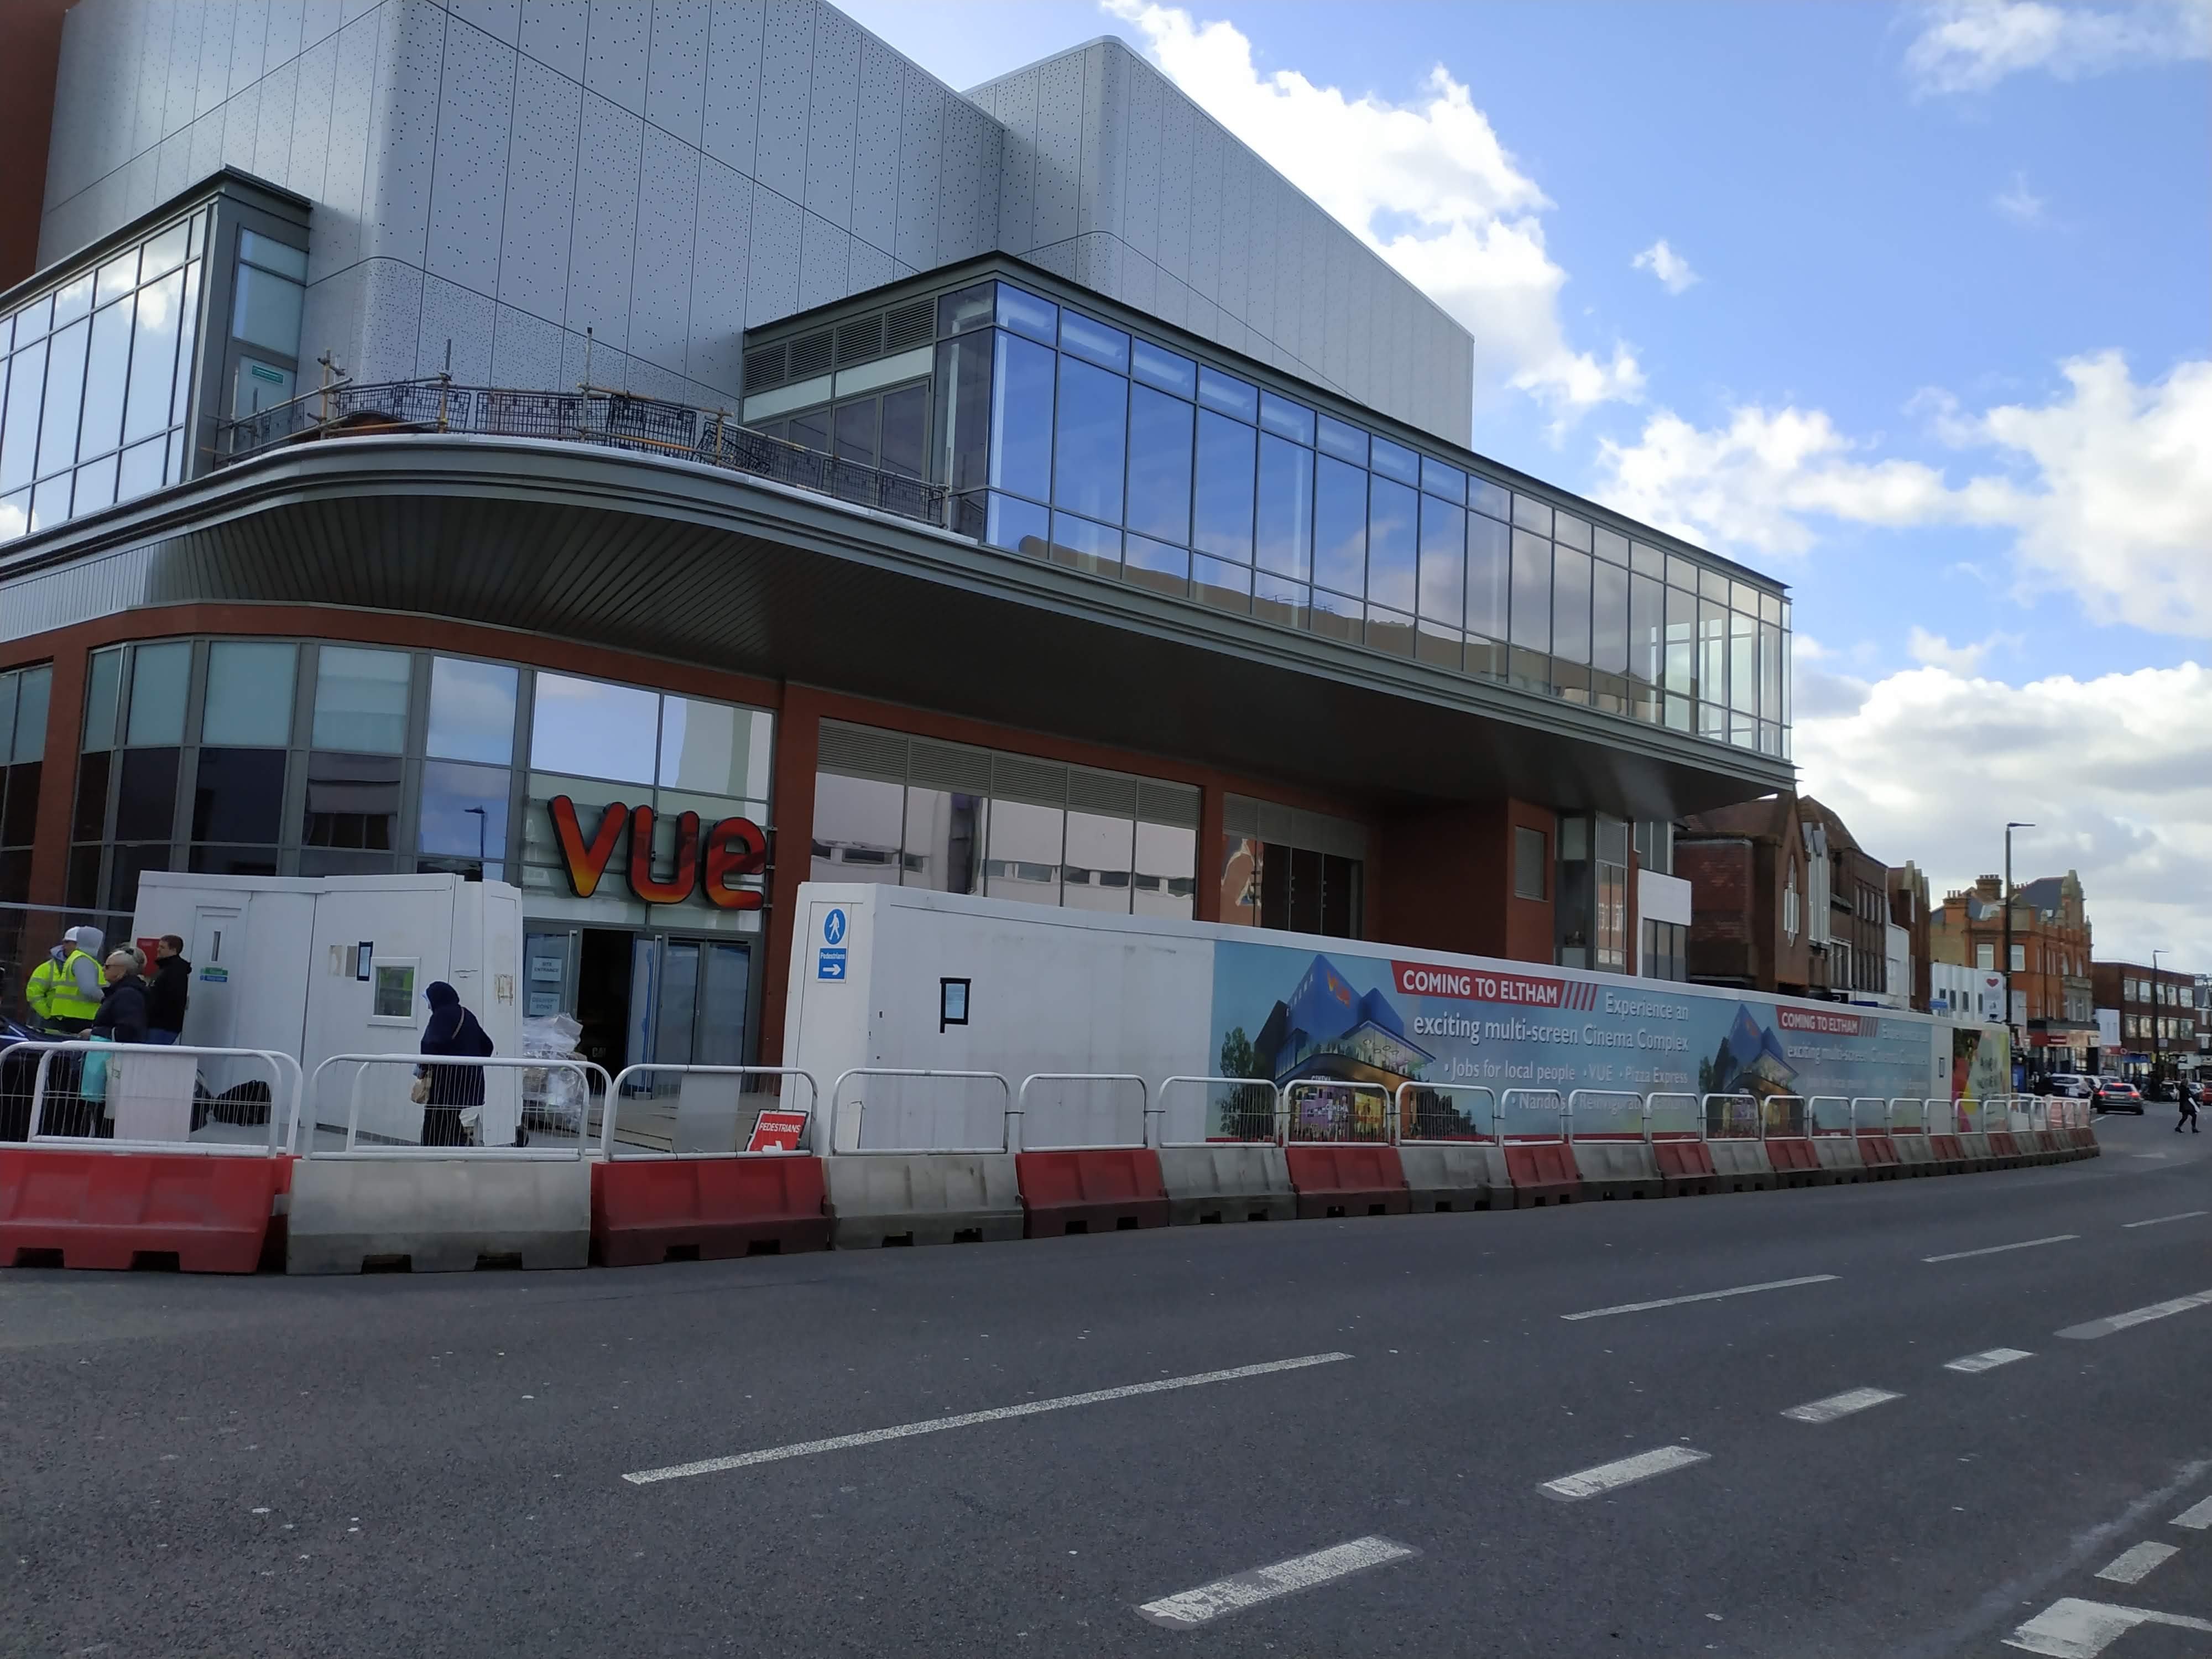 Elthams New Vue Cinema On The High Street Reaches Home